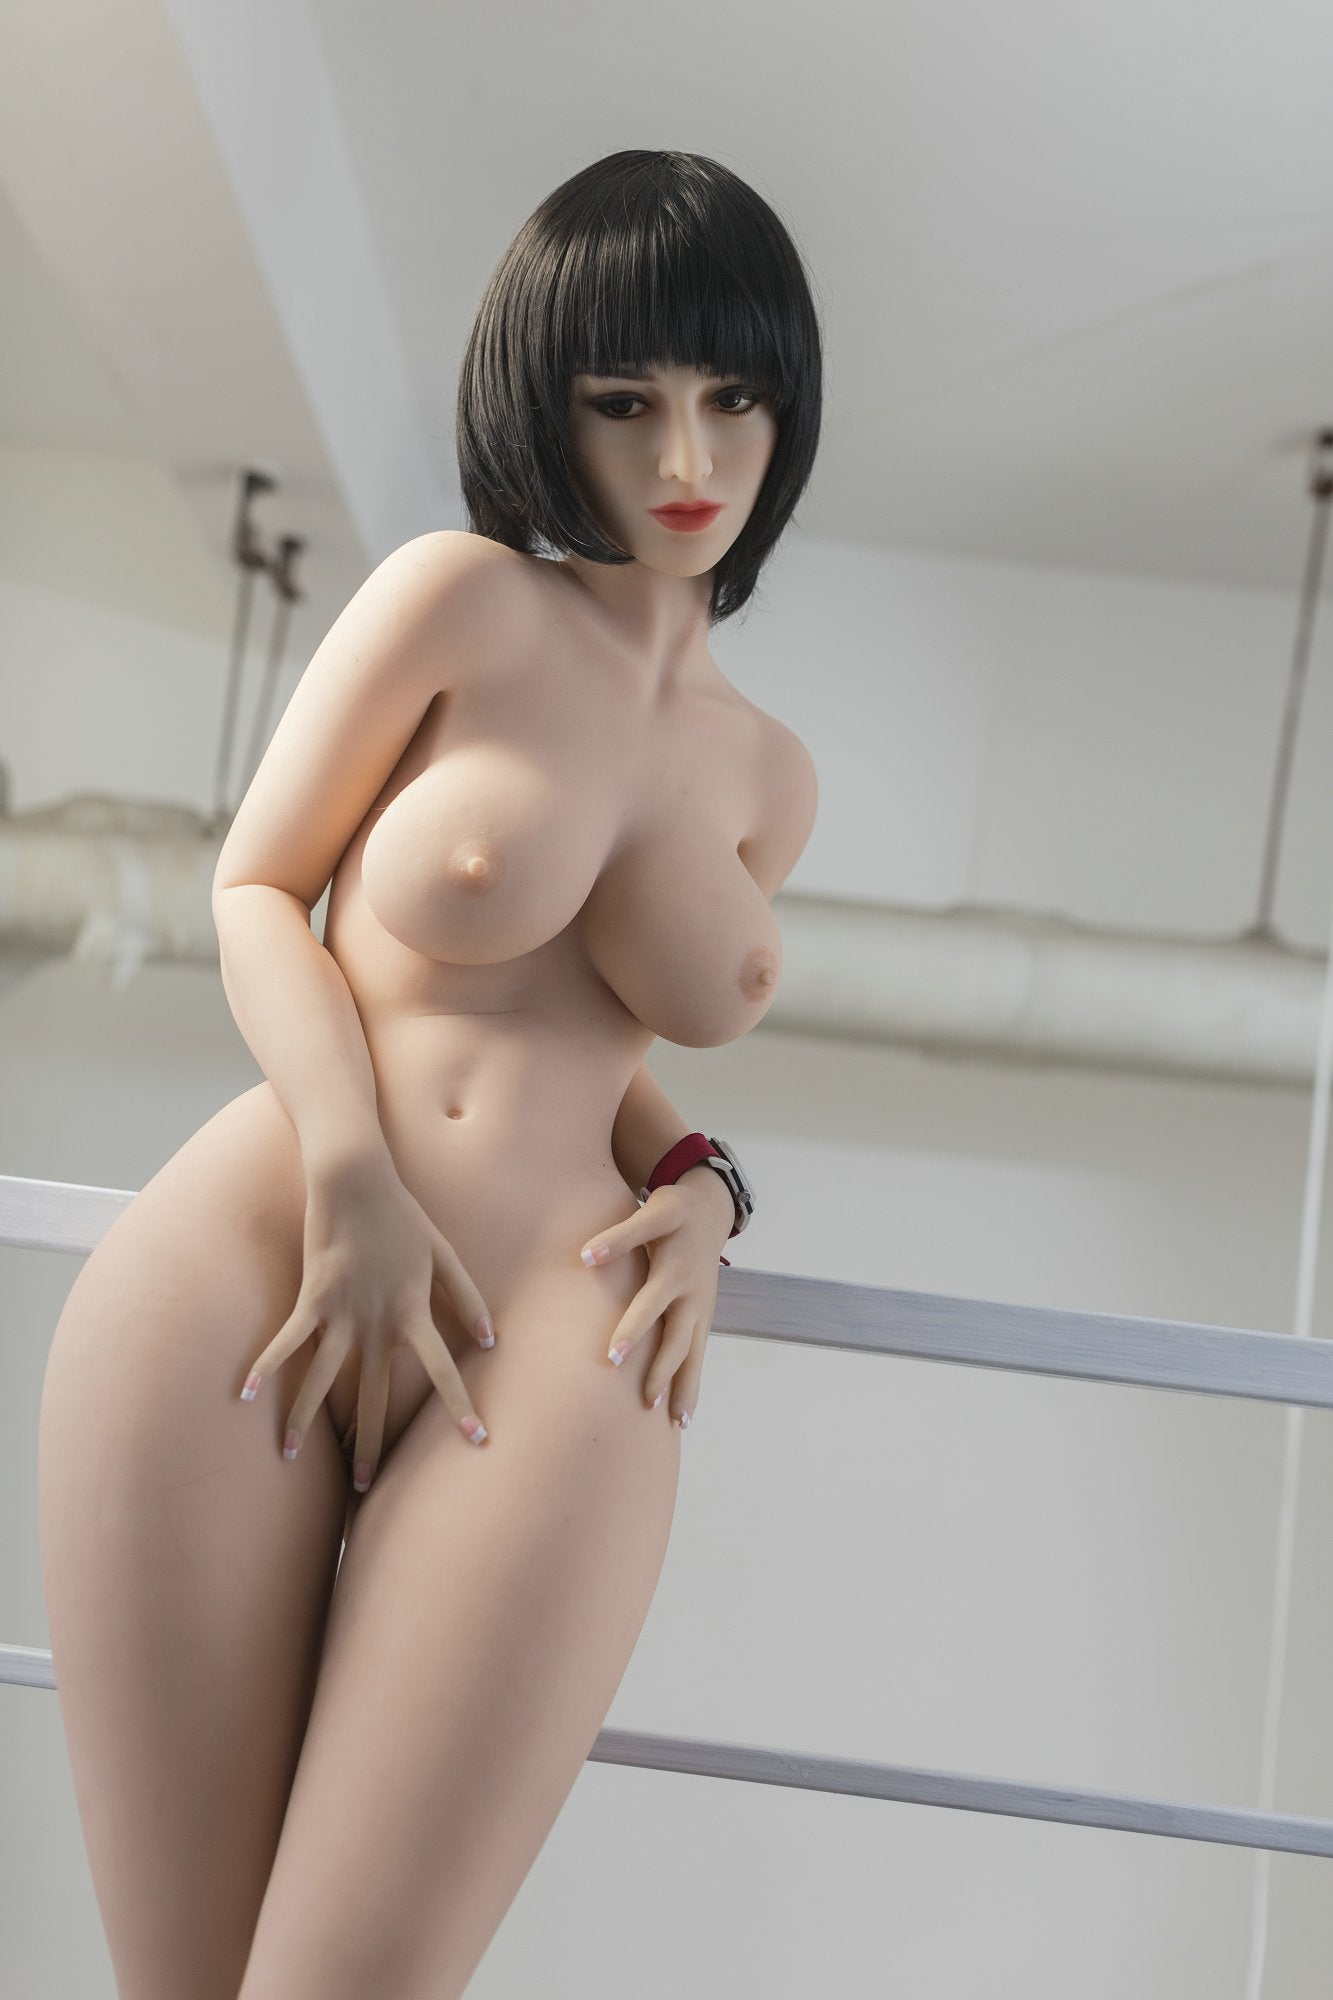 mackenzie 170cm black hair medium tits athletic tpe yl sex doll(8)